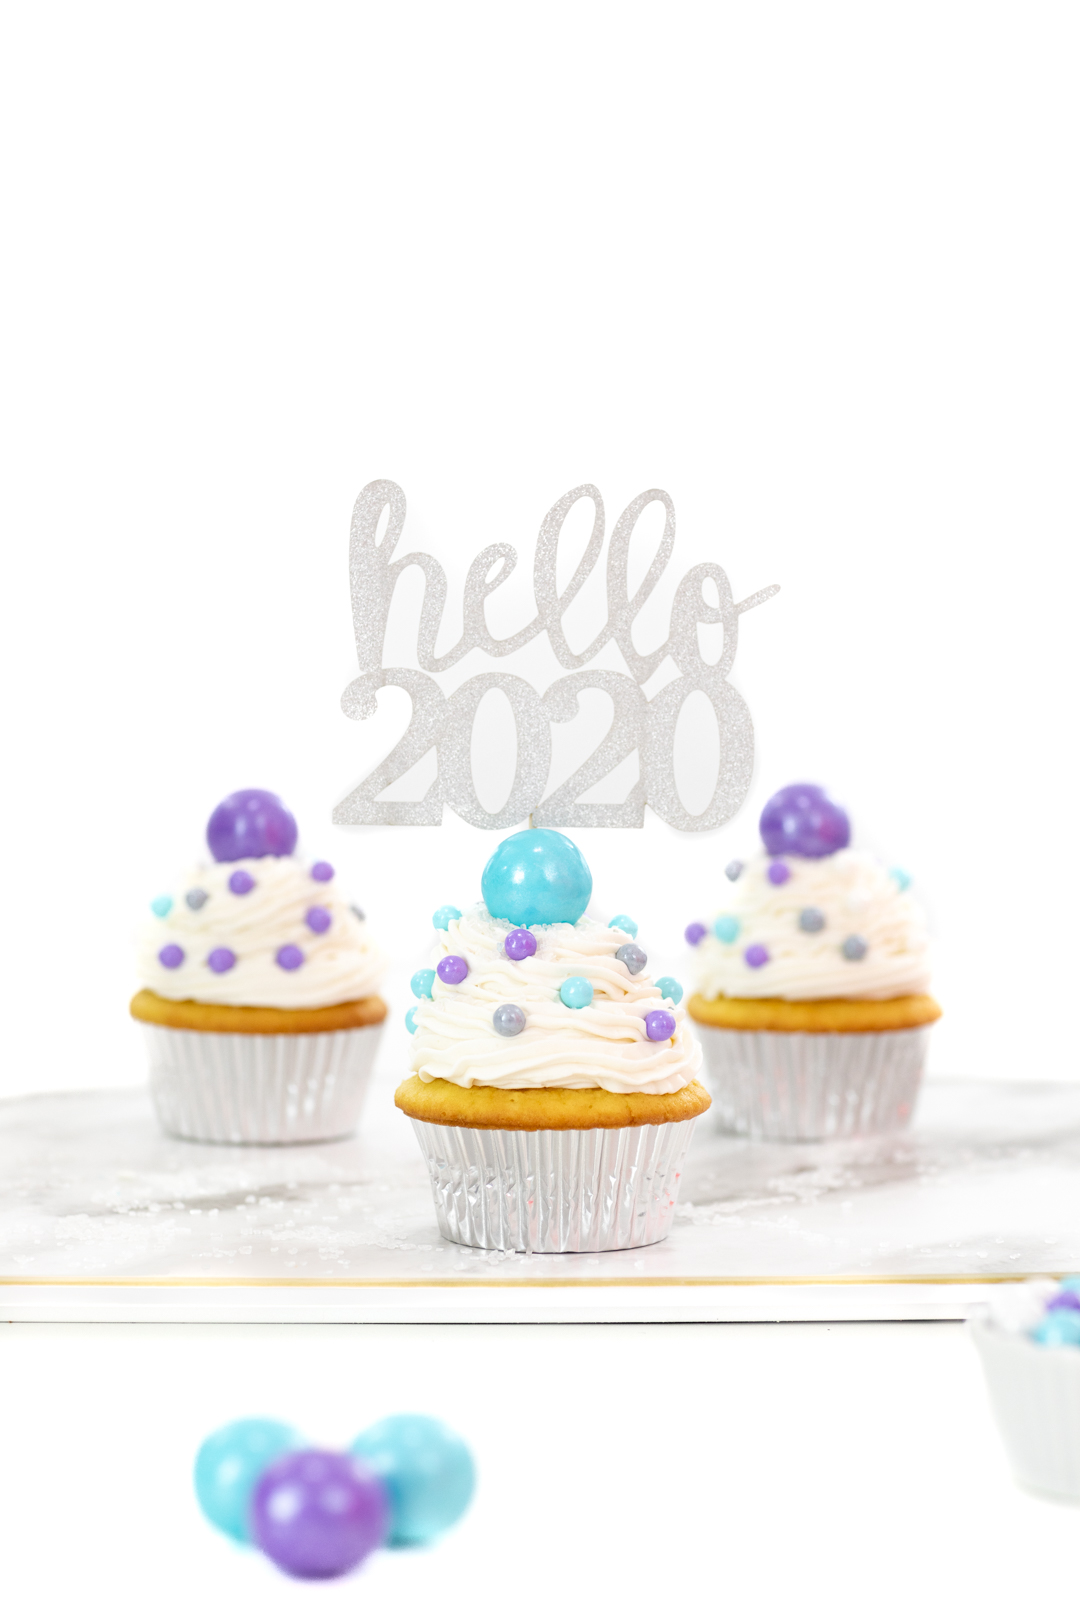 gumball cupcakes for new year's day or new year's eve.